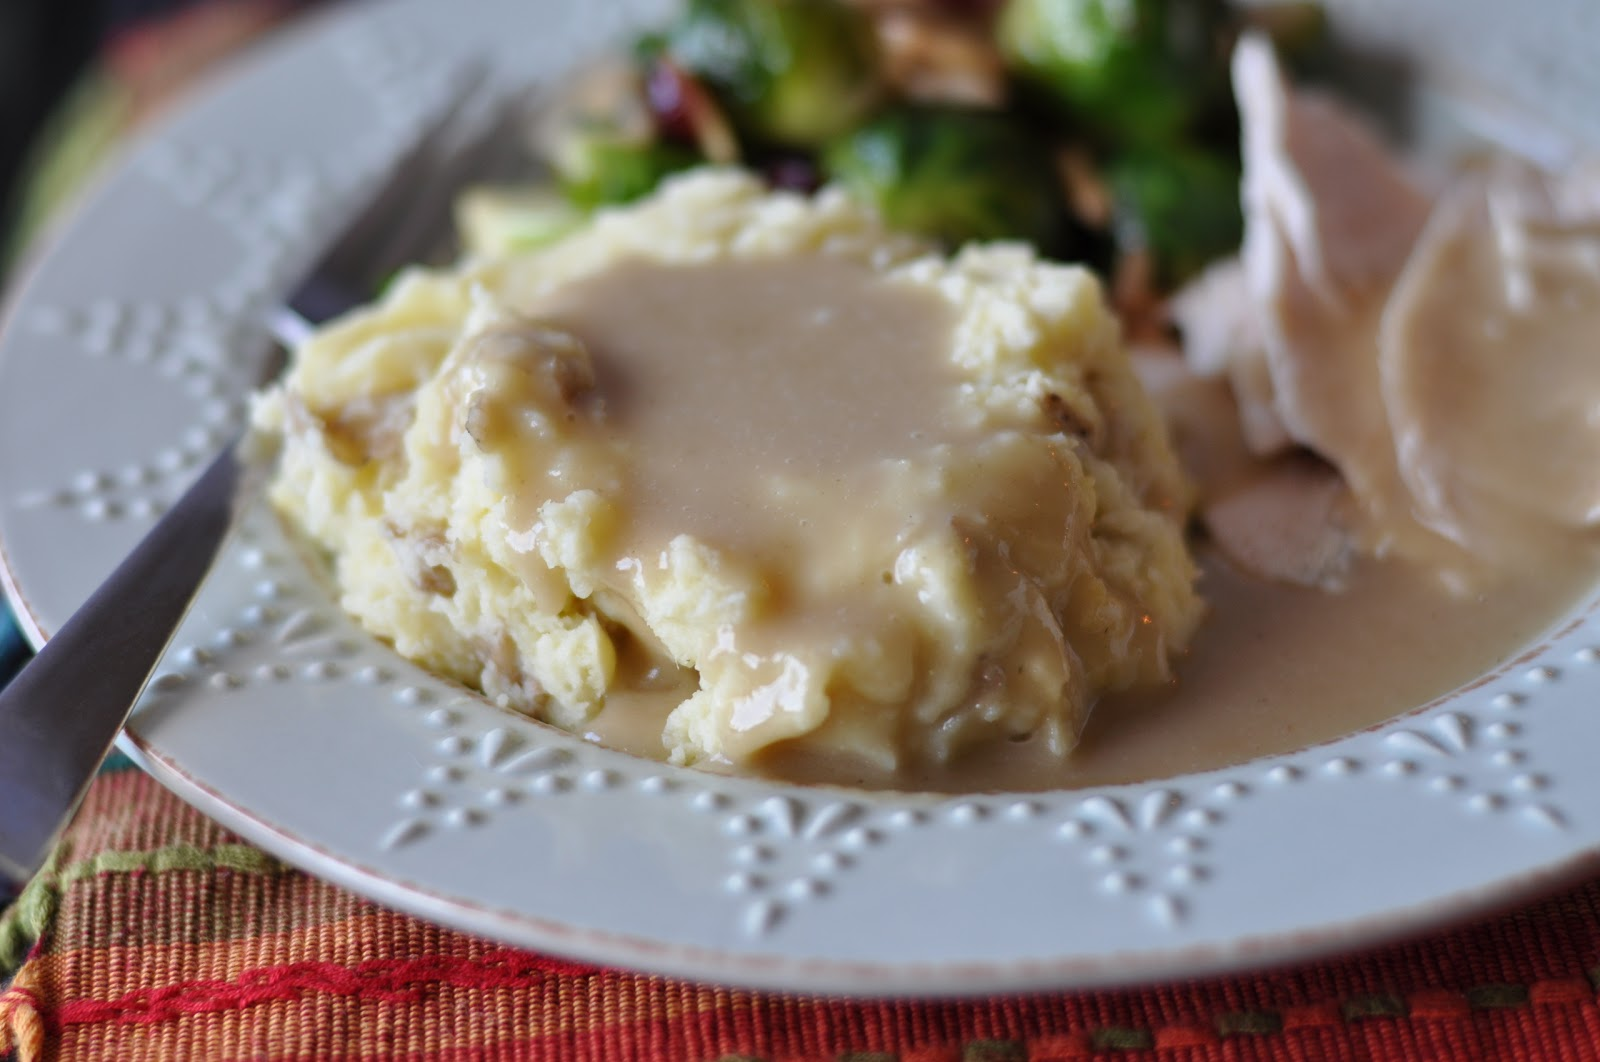 Nourishing Meals: How to Make Gluten-Free Gravy